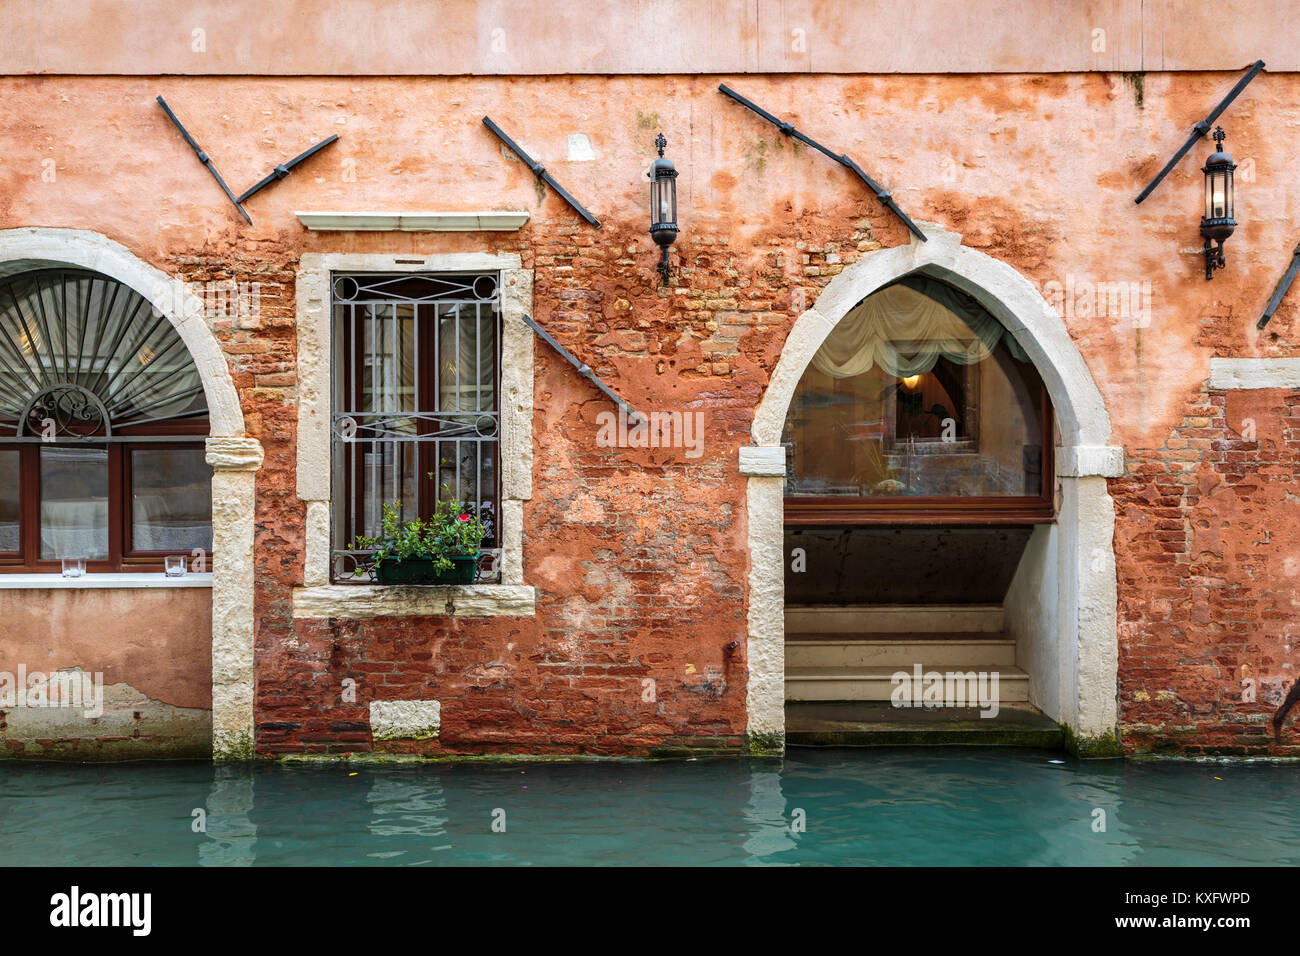 A building detail and canal in Veneto, Venice, Italy, Europe. - Stock Image